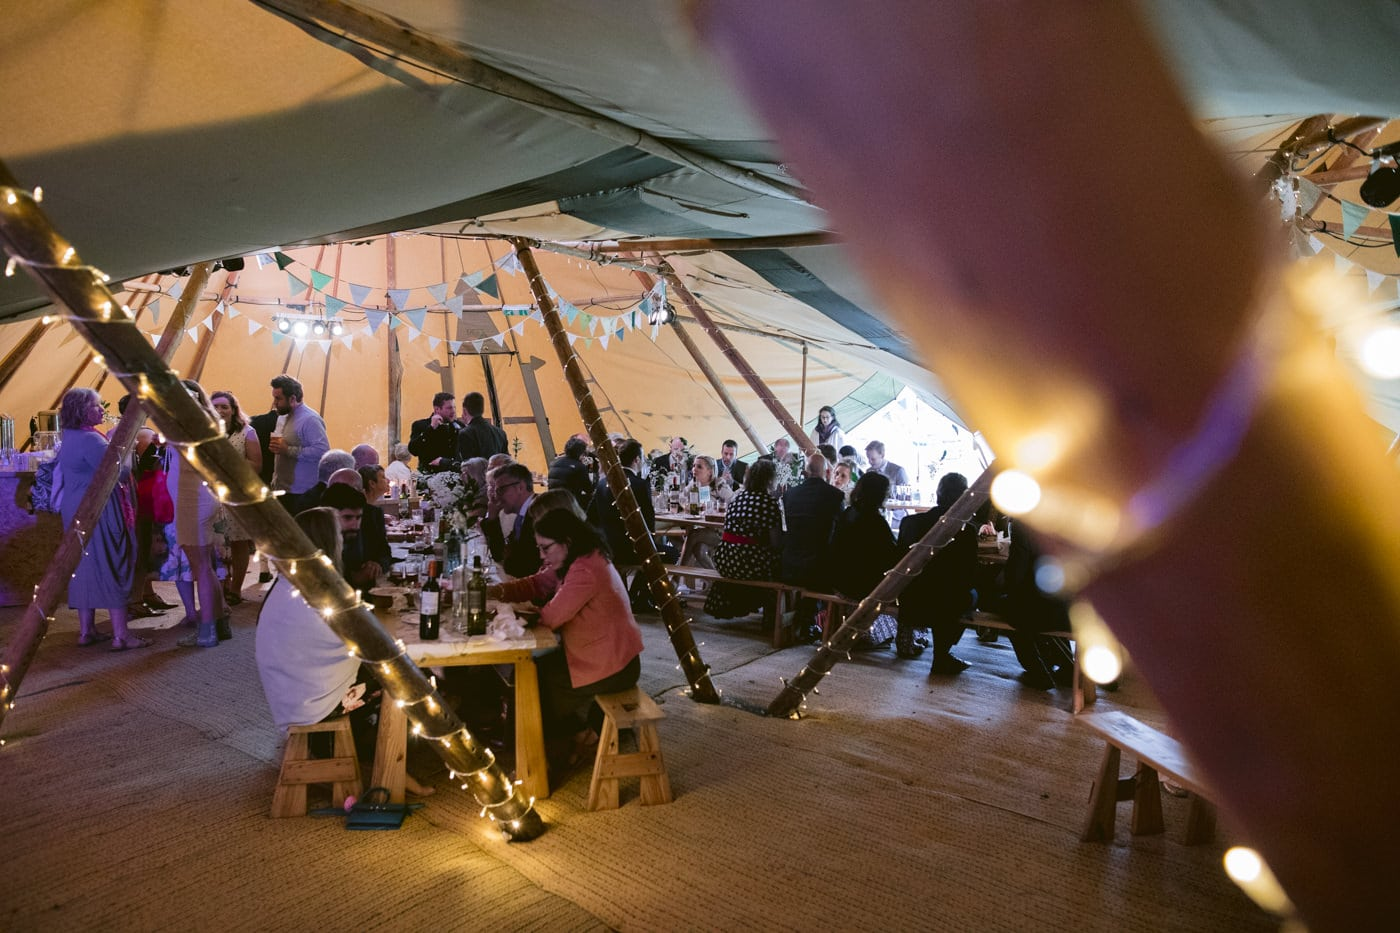 Evening Tipi Lights and Guests Sitting Down